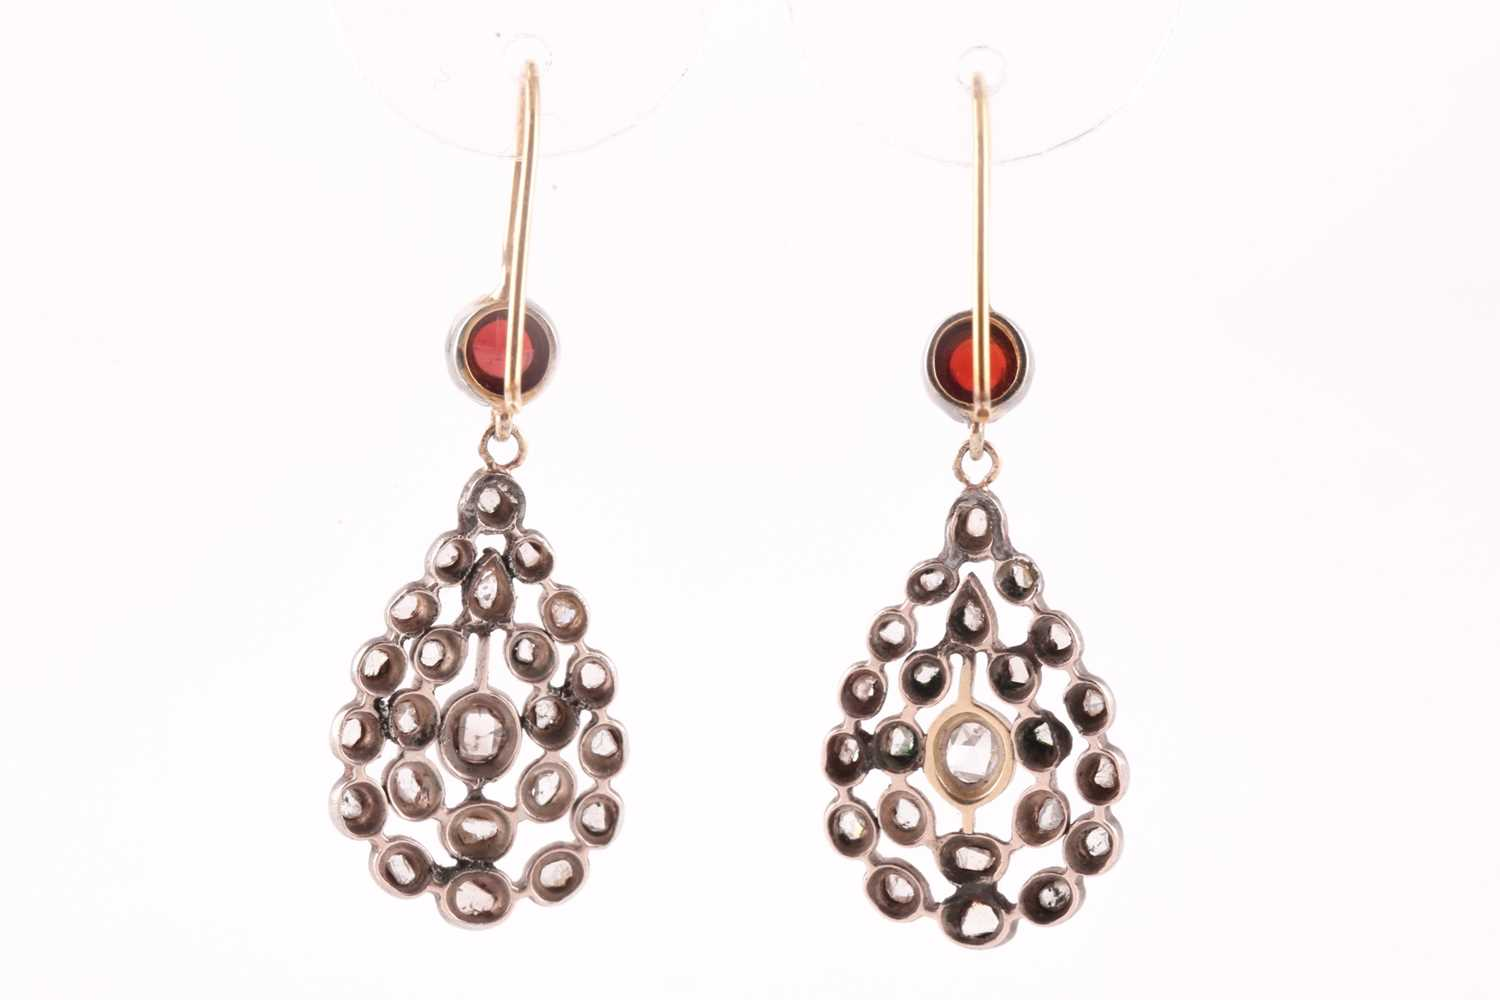 A pair of diamond and garnet earrings, the openwork pear-shaped silver mounts inset with rose-cut - Image 2 of 2